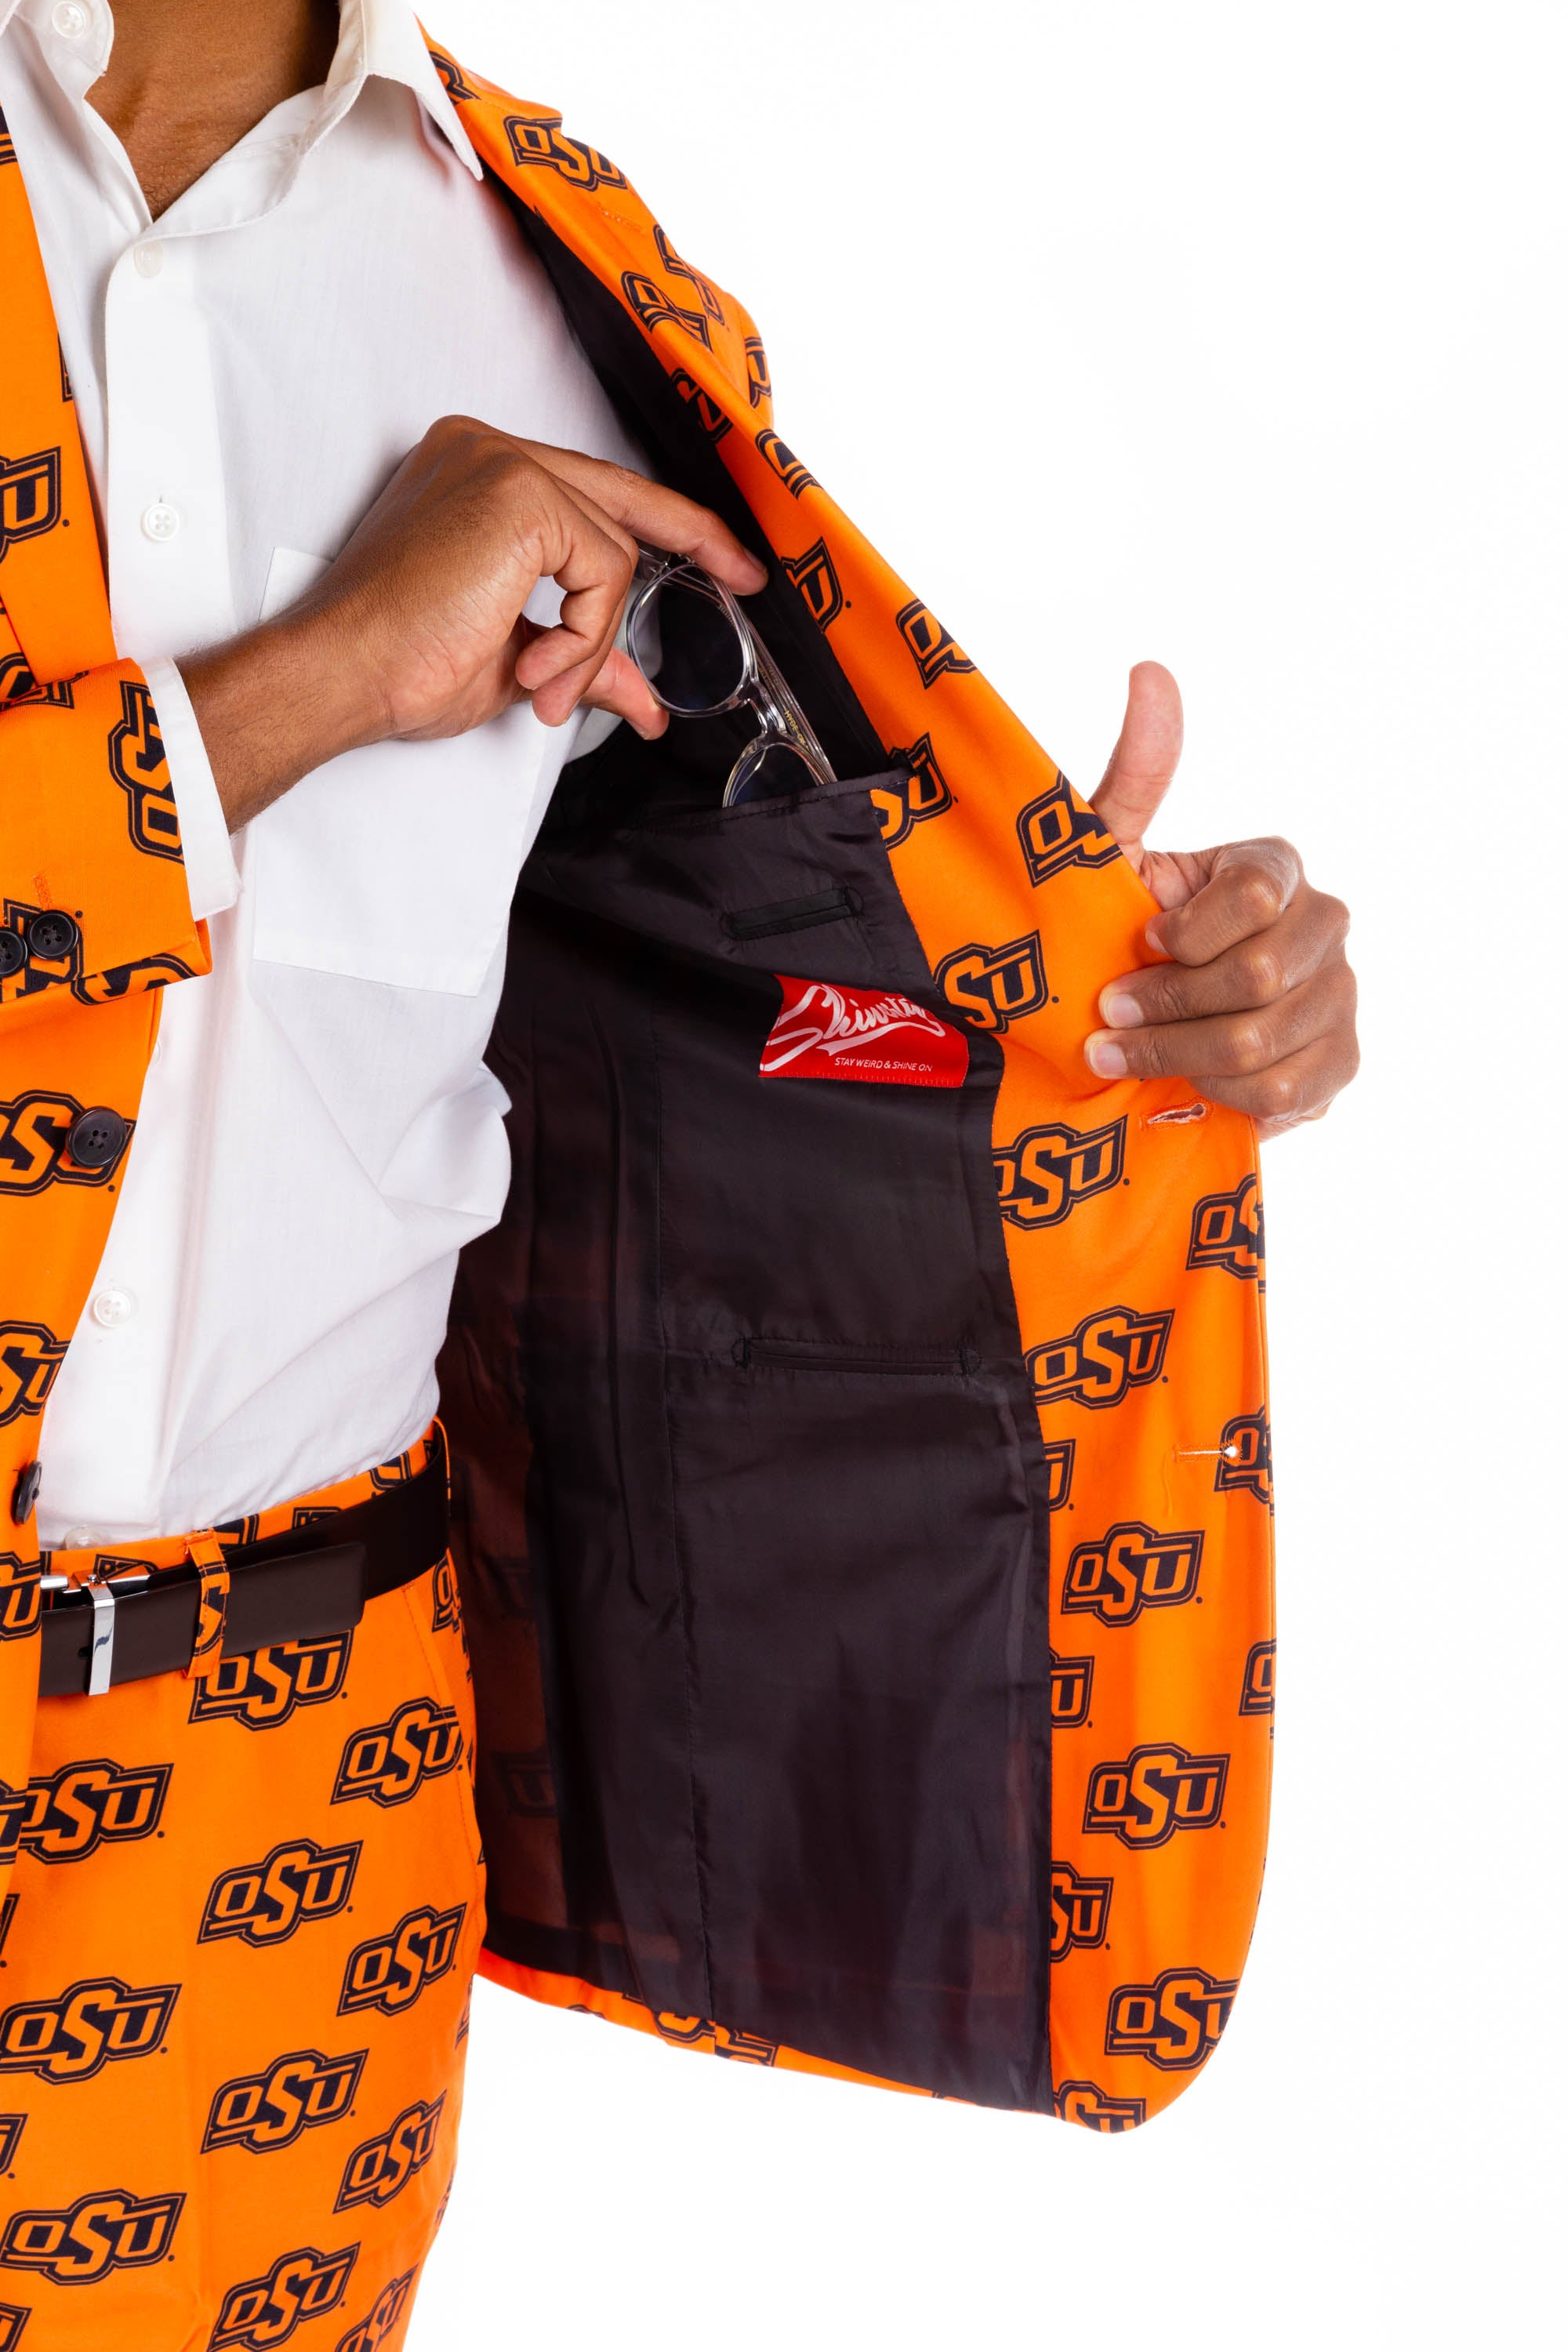 Oklahoma State University Gameday Blazer Interior Pocket